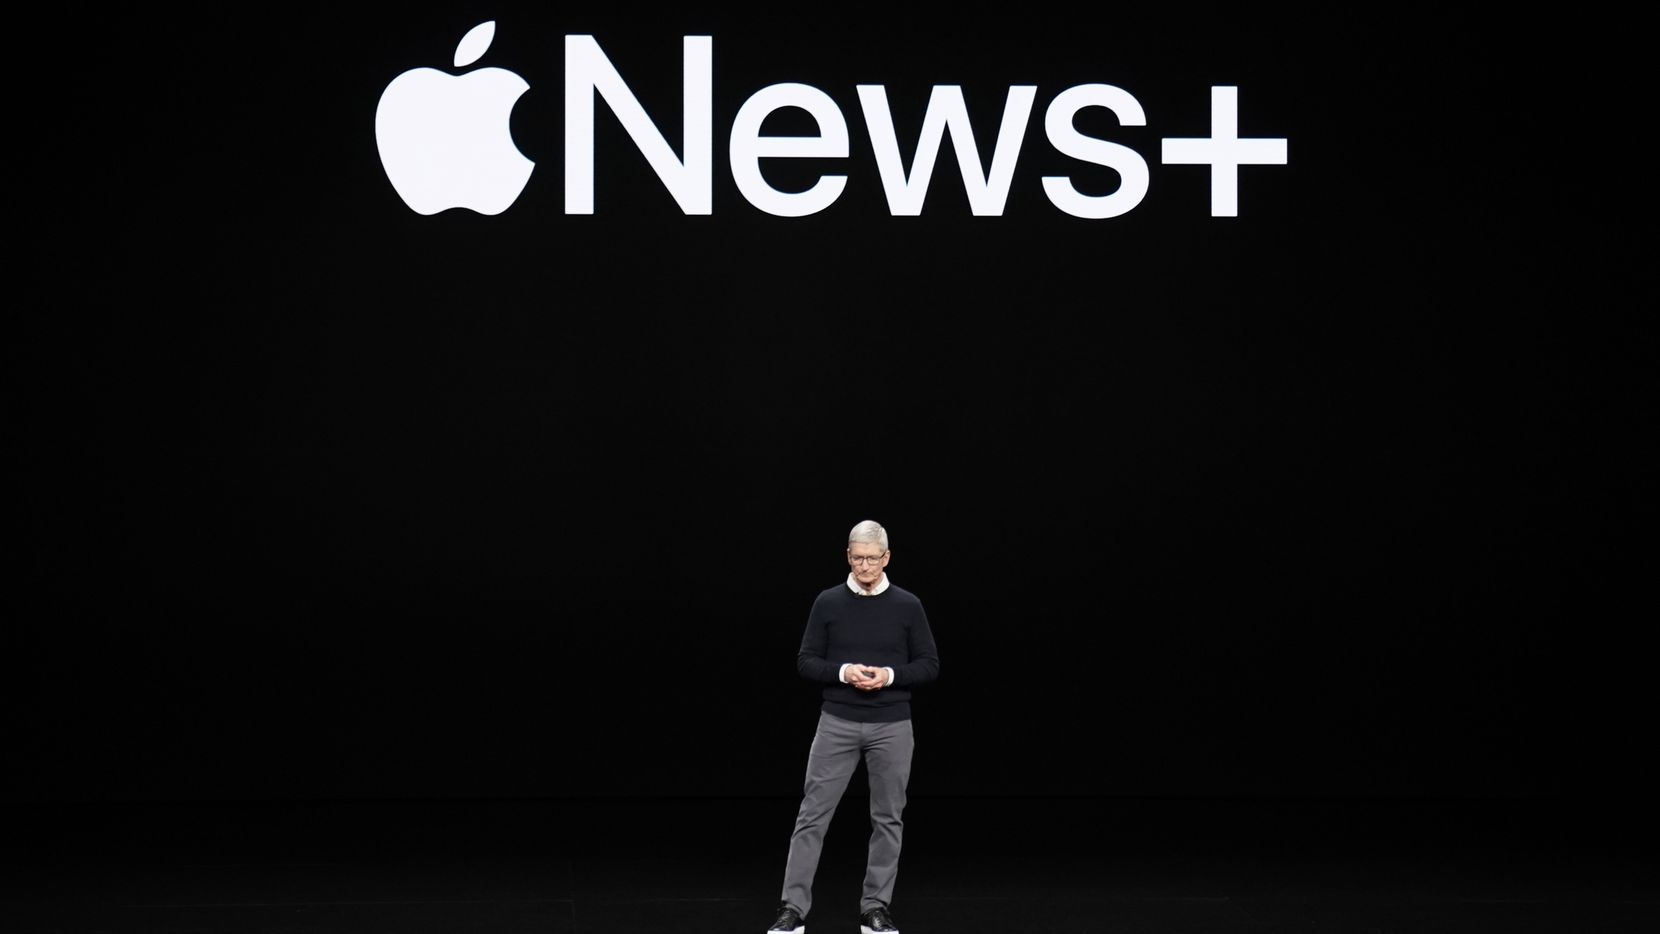 Apple CEO Tim Cook at the Steve Jobs Theater during an event to announce new products Monday, March. 25, 2019, in Cupertino, Calif. (AP Photo/Tony Avelar)